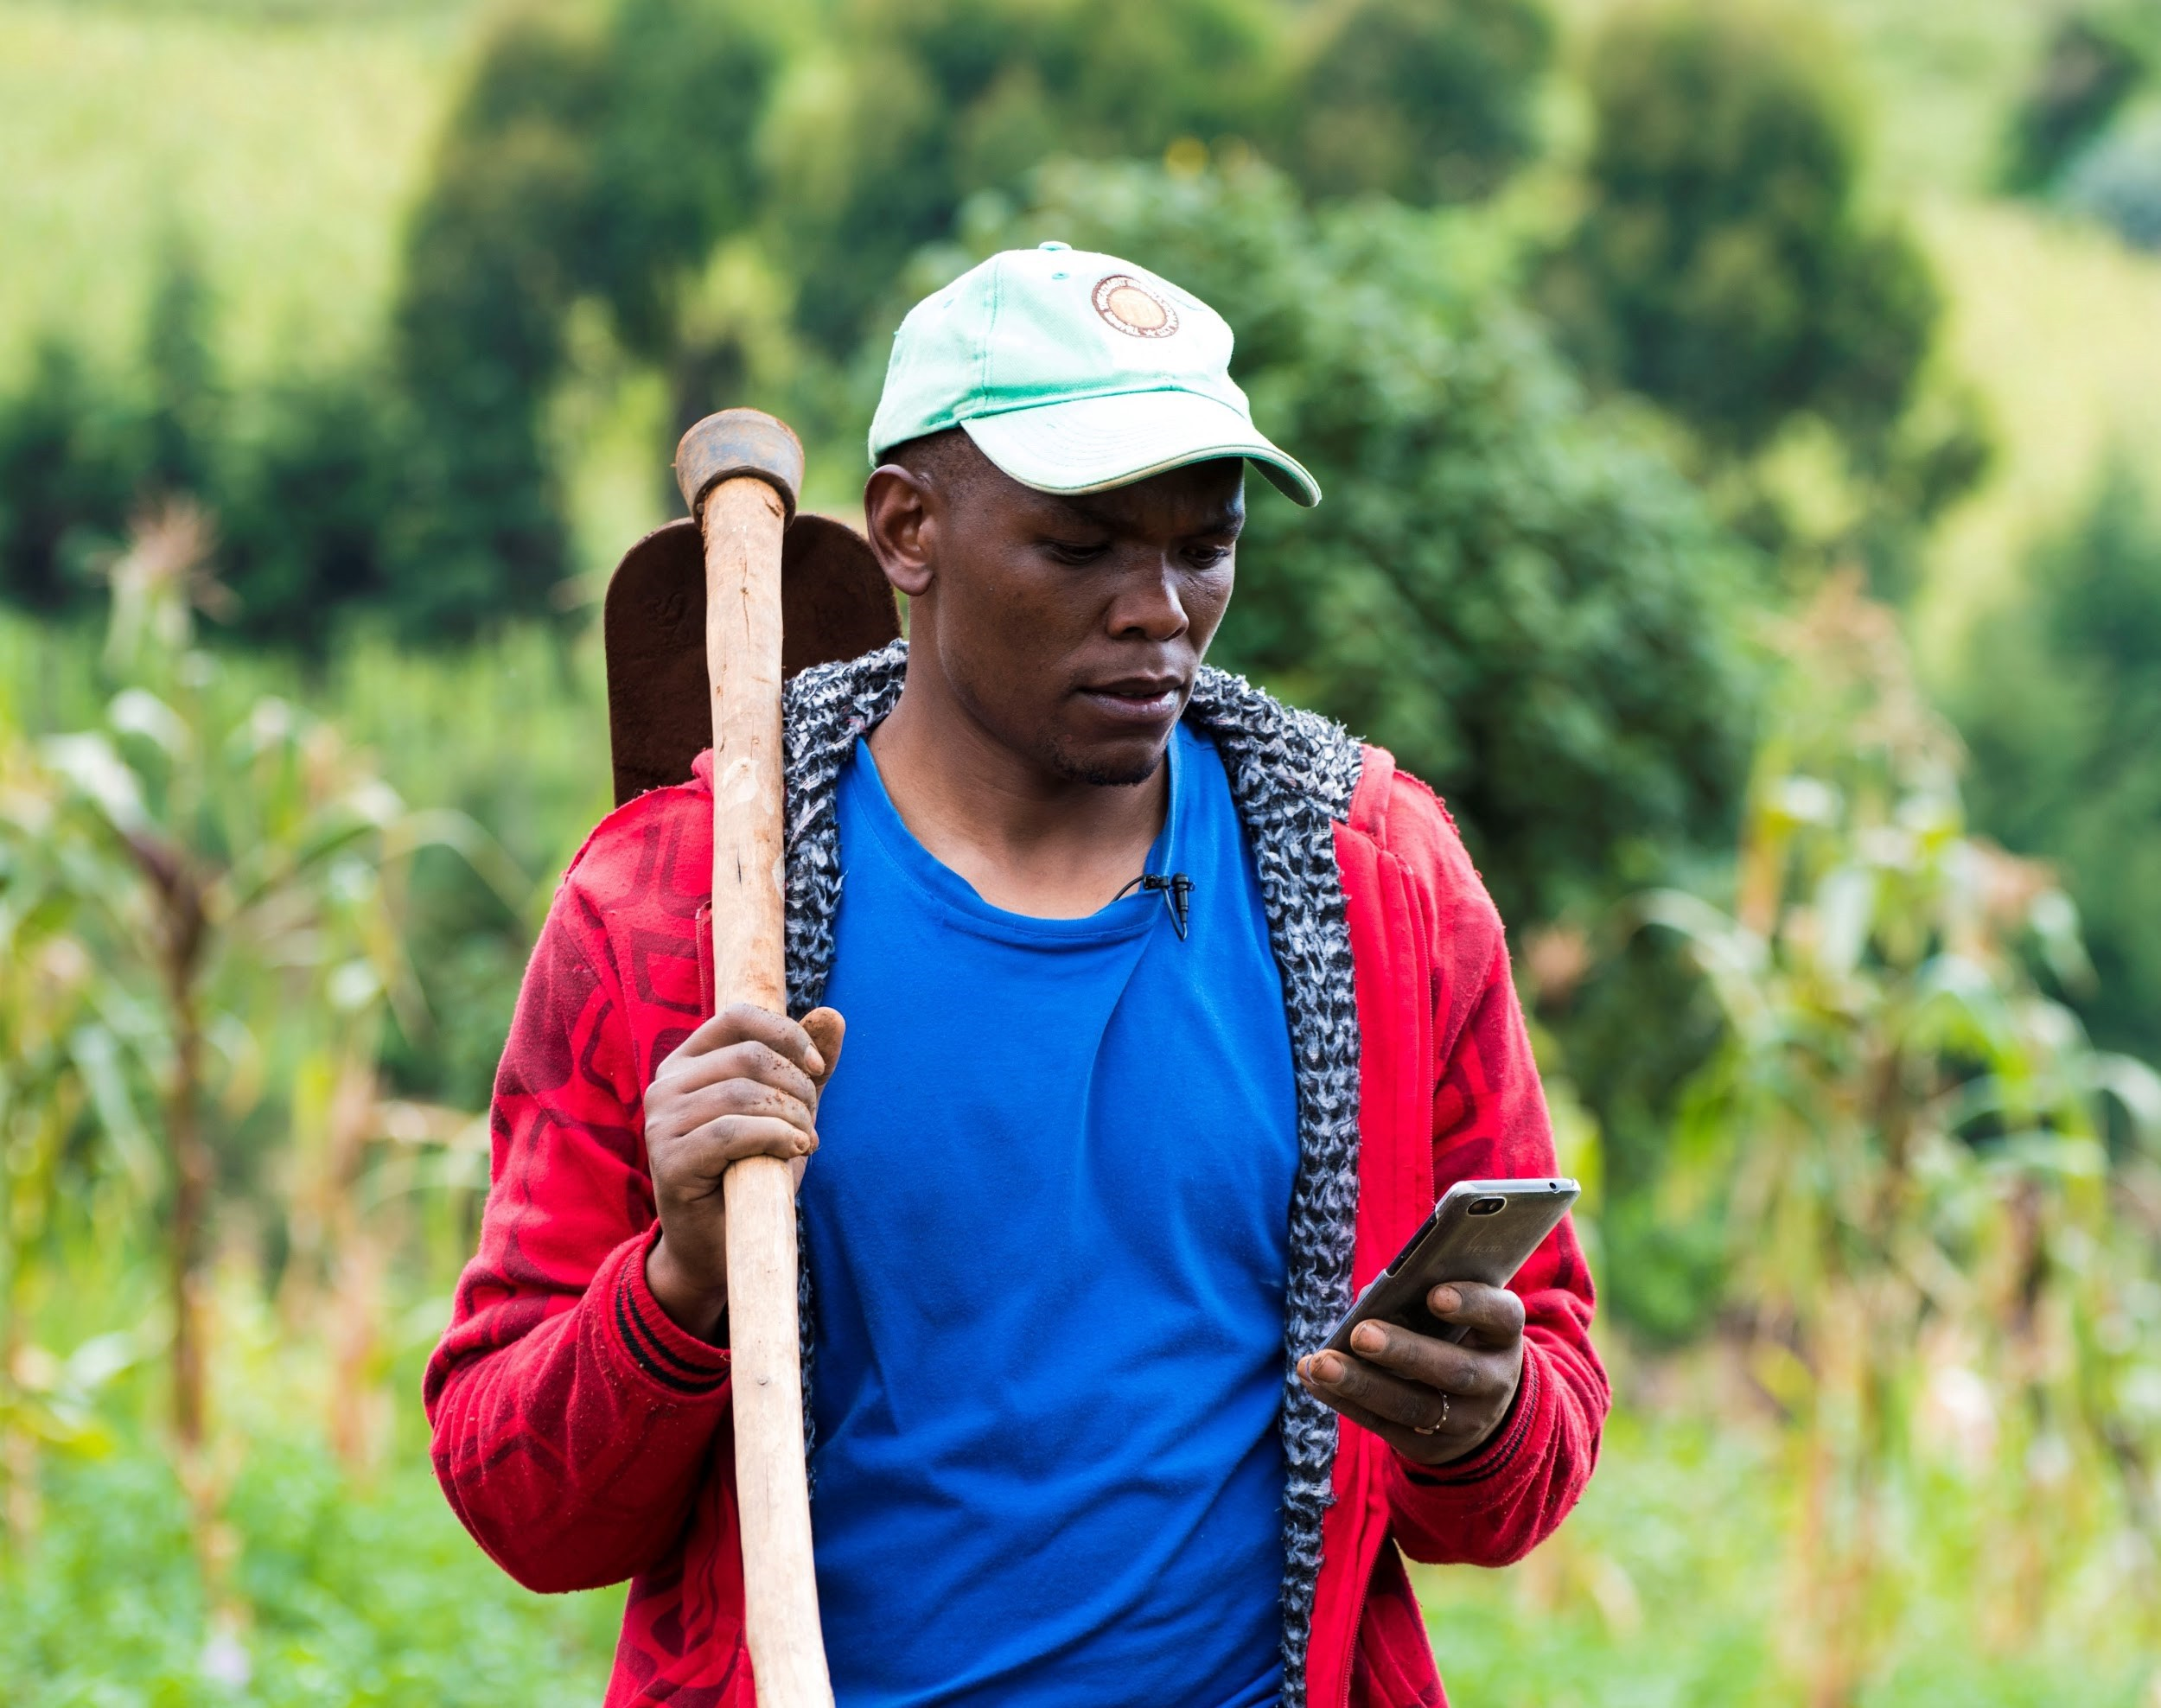 A small holder farmer uses the Agri-Wallet to help move produce and plan for the future.